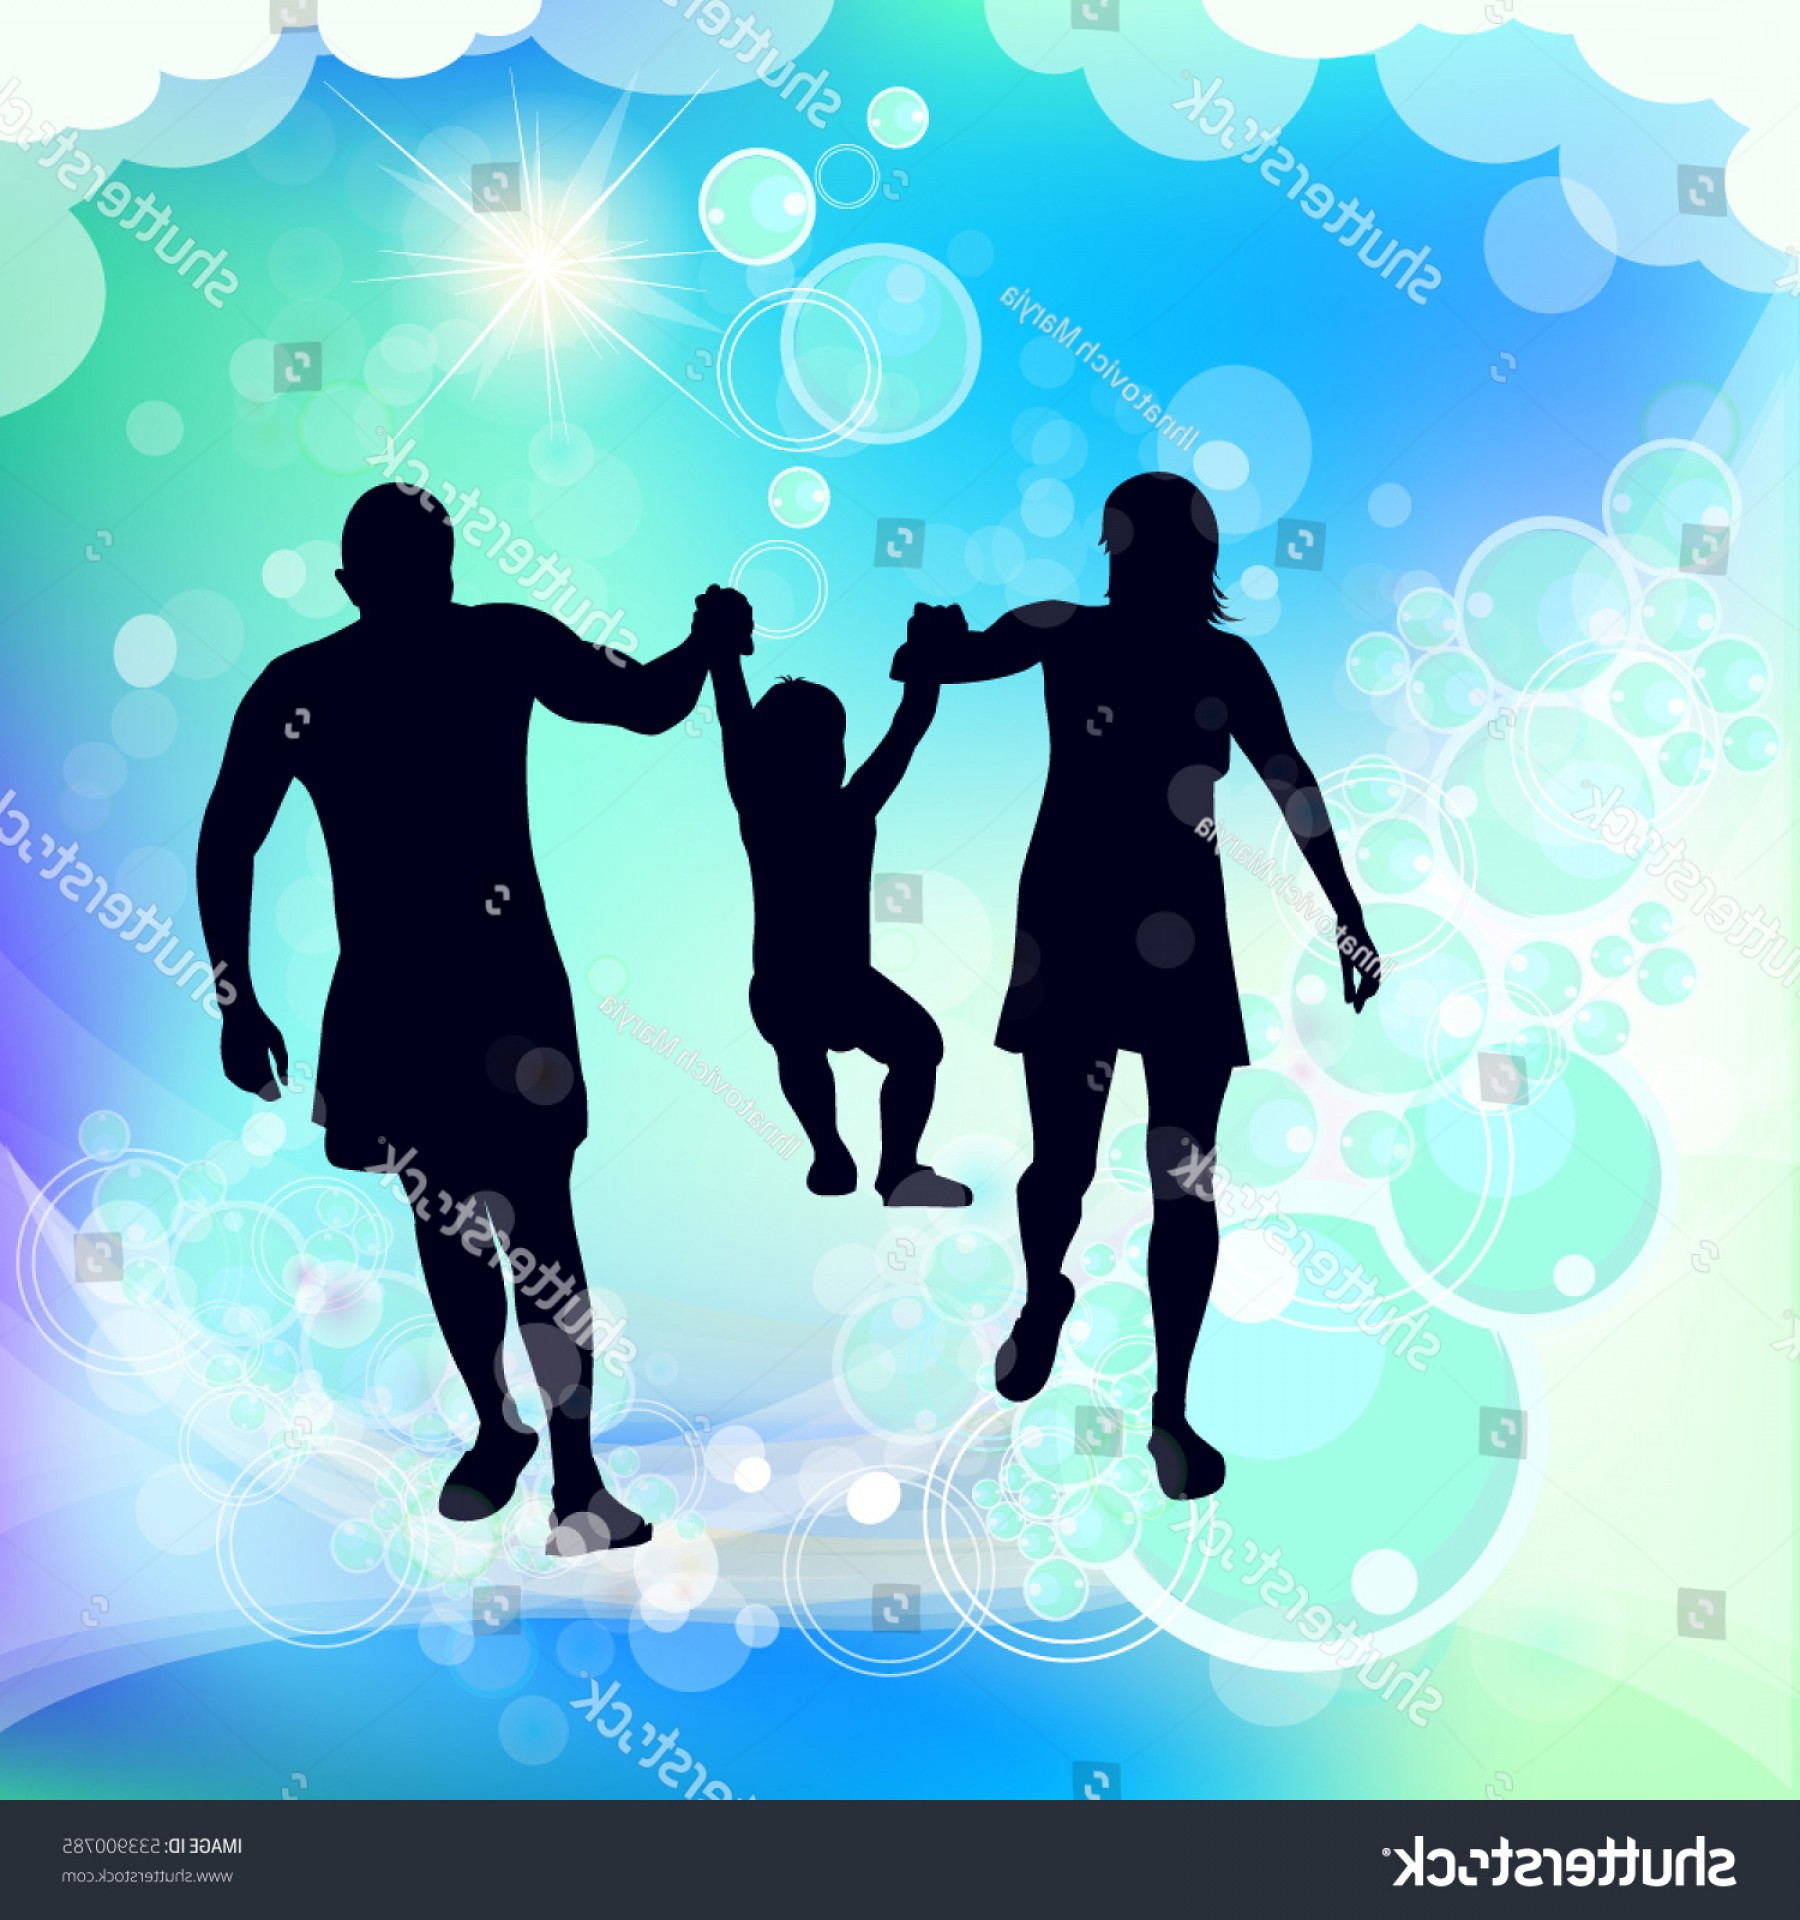 Family Silhouette Vector Art: Family Silhouette Mother Father Child Vector